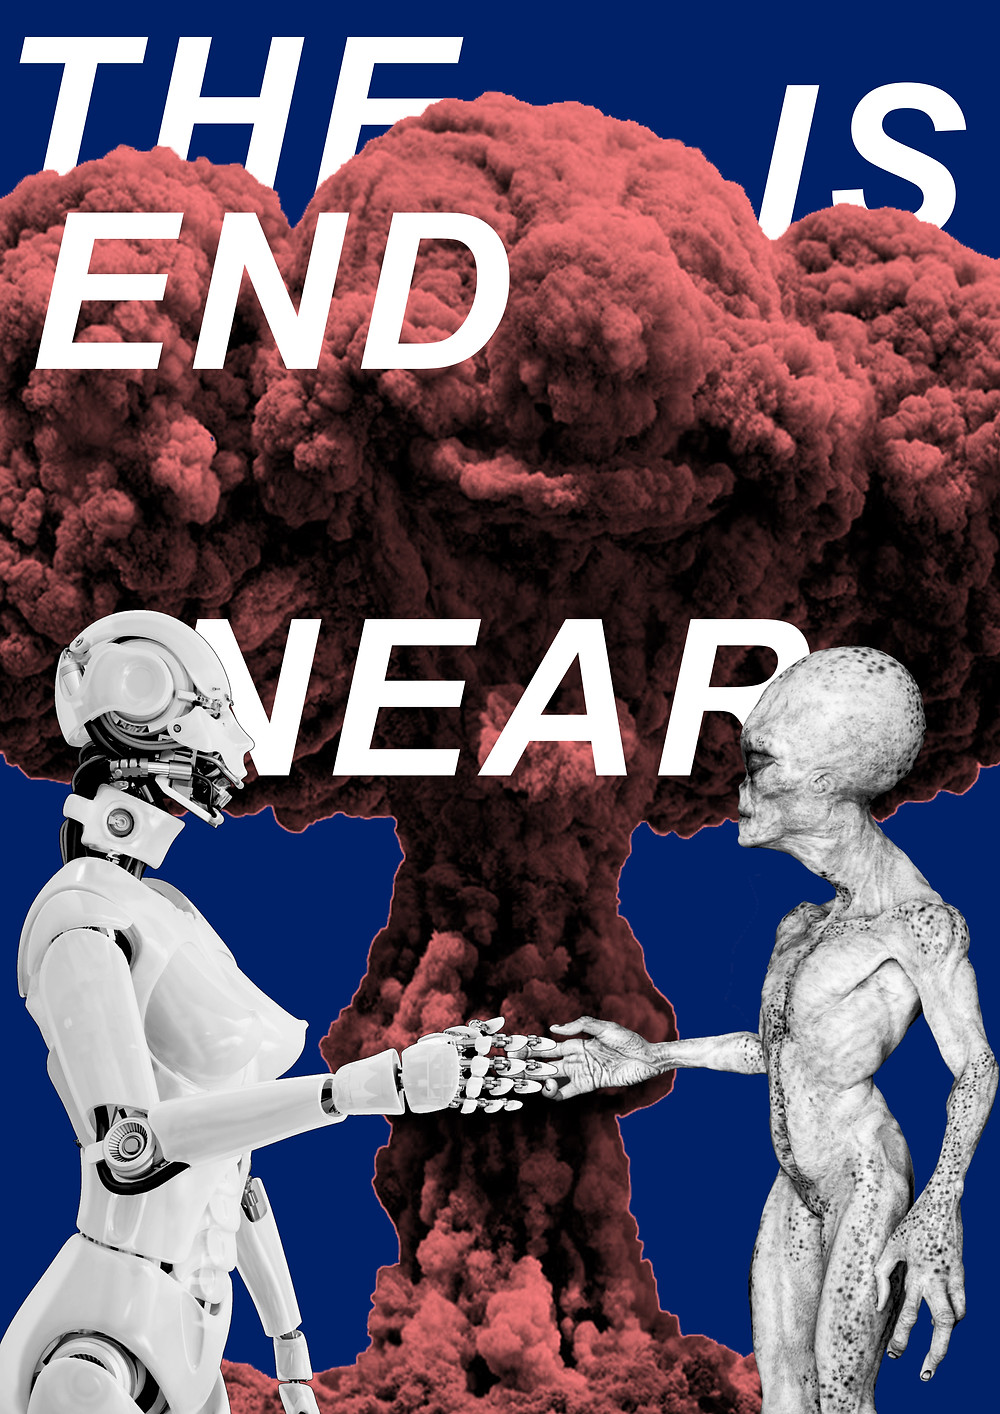 The End Is Near Once I read an article about some possible apocalyptic scenarios — from massive nuclear explosion to zombie attack, from alien invasion to enslavement by AI. It struck me what if not just a single one, but all of these theories are true, and the real doomsday must include all the factors. Robots make agreements with ET's about capturing the planet while people destroy their own kind in an atomic war not forgetting to snack with someone's radioactive brains... Yeah, sounds like crazy stuff but a good idea for poster design.